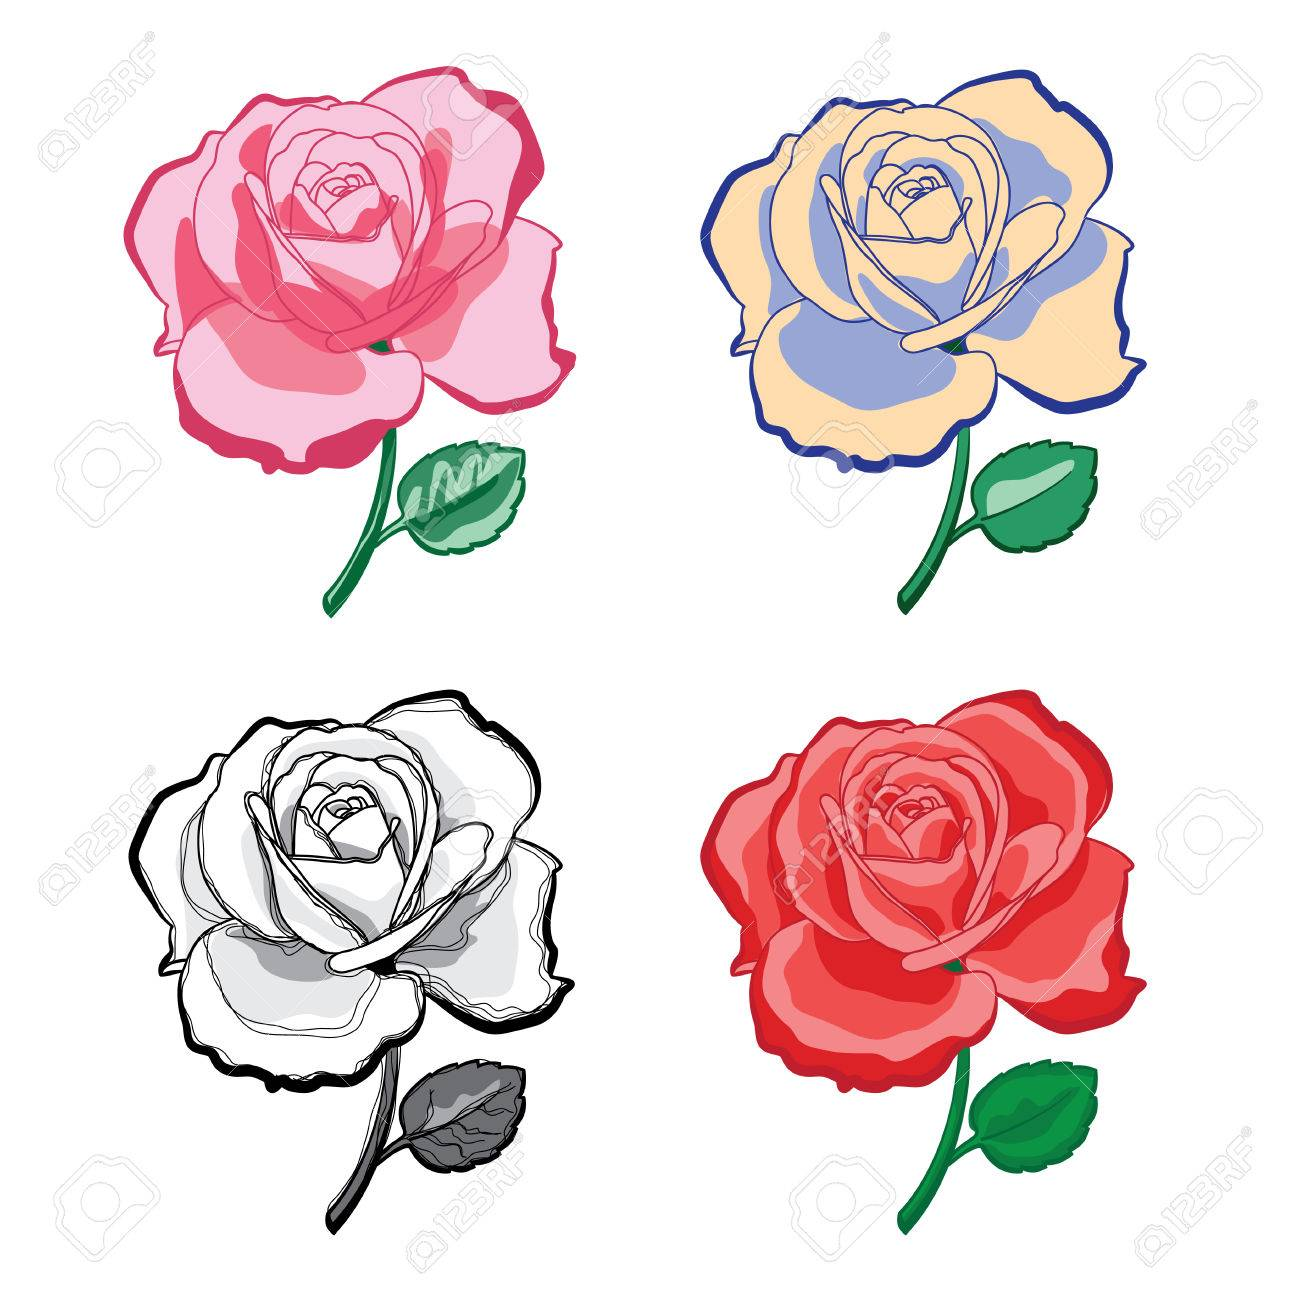 Illustration Set Of Color Artistic Drawing Roses For Print And